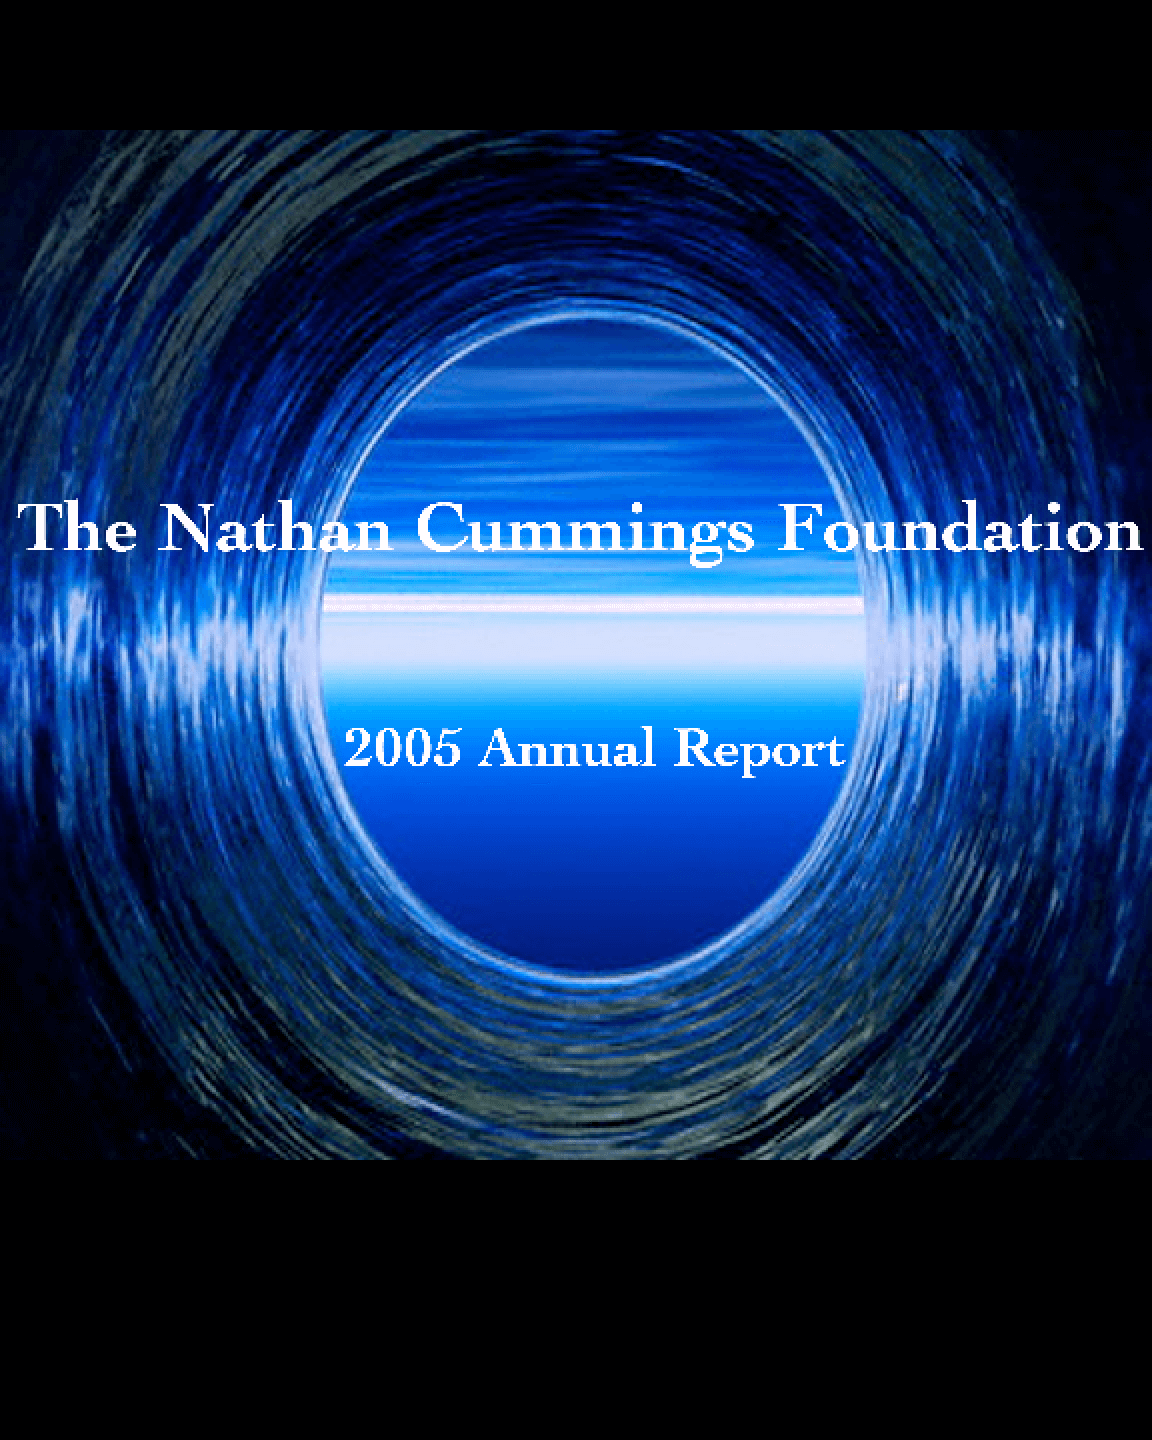 Nathan Cummings Foundation - 2005 Annual Report